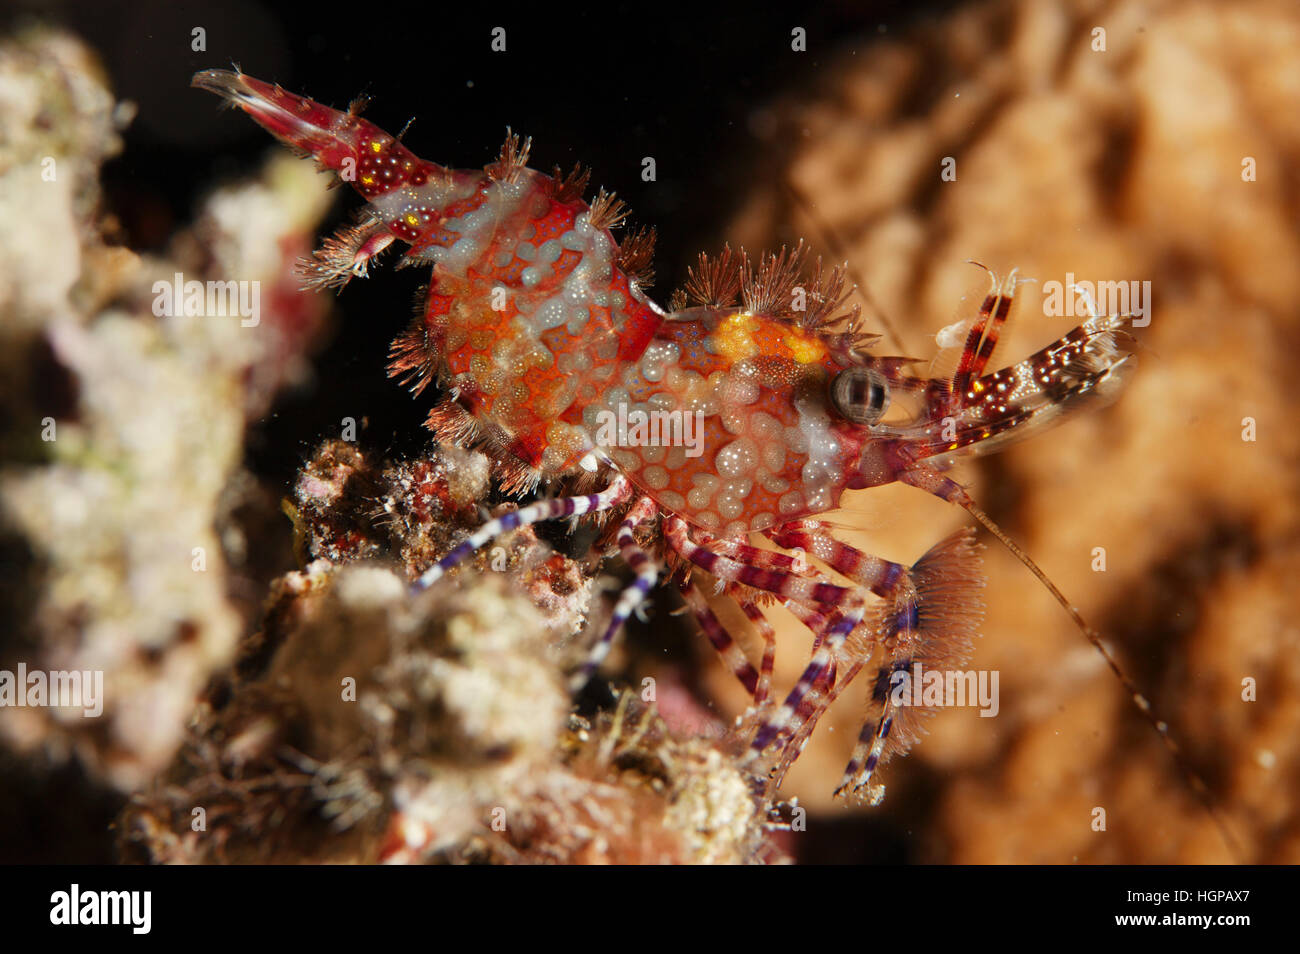 A macro close-up shot of the Red Sea marble shrimp called Saron marmoratus sitting on the coral. - Stock Image